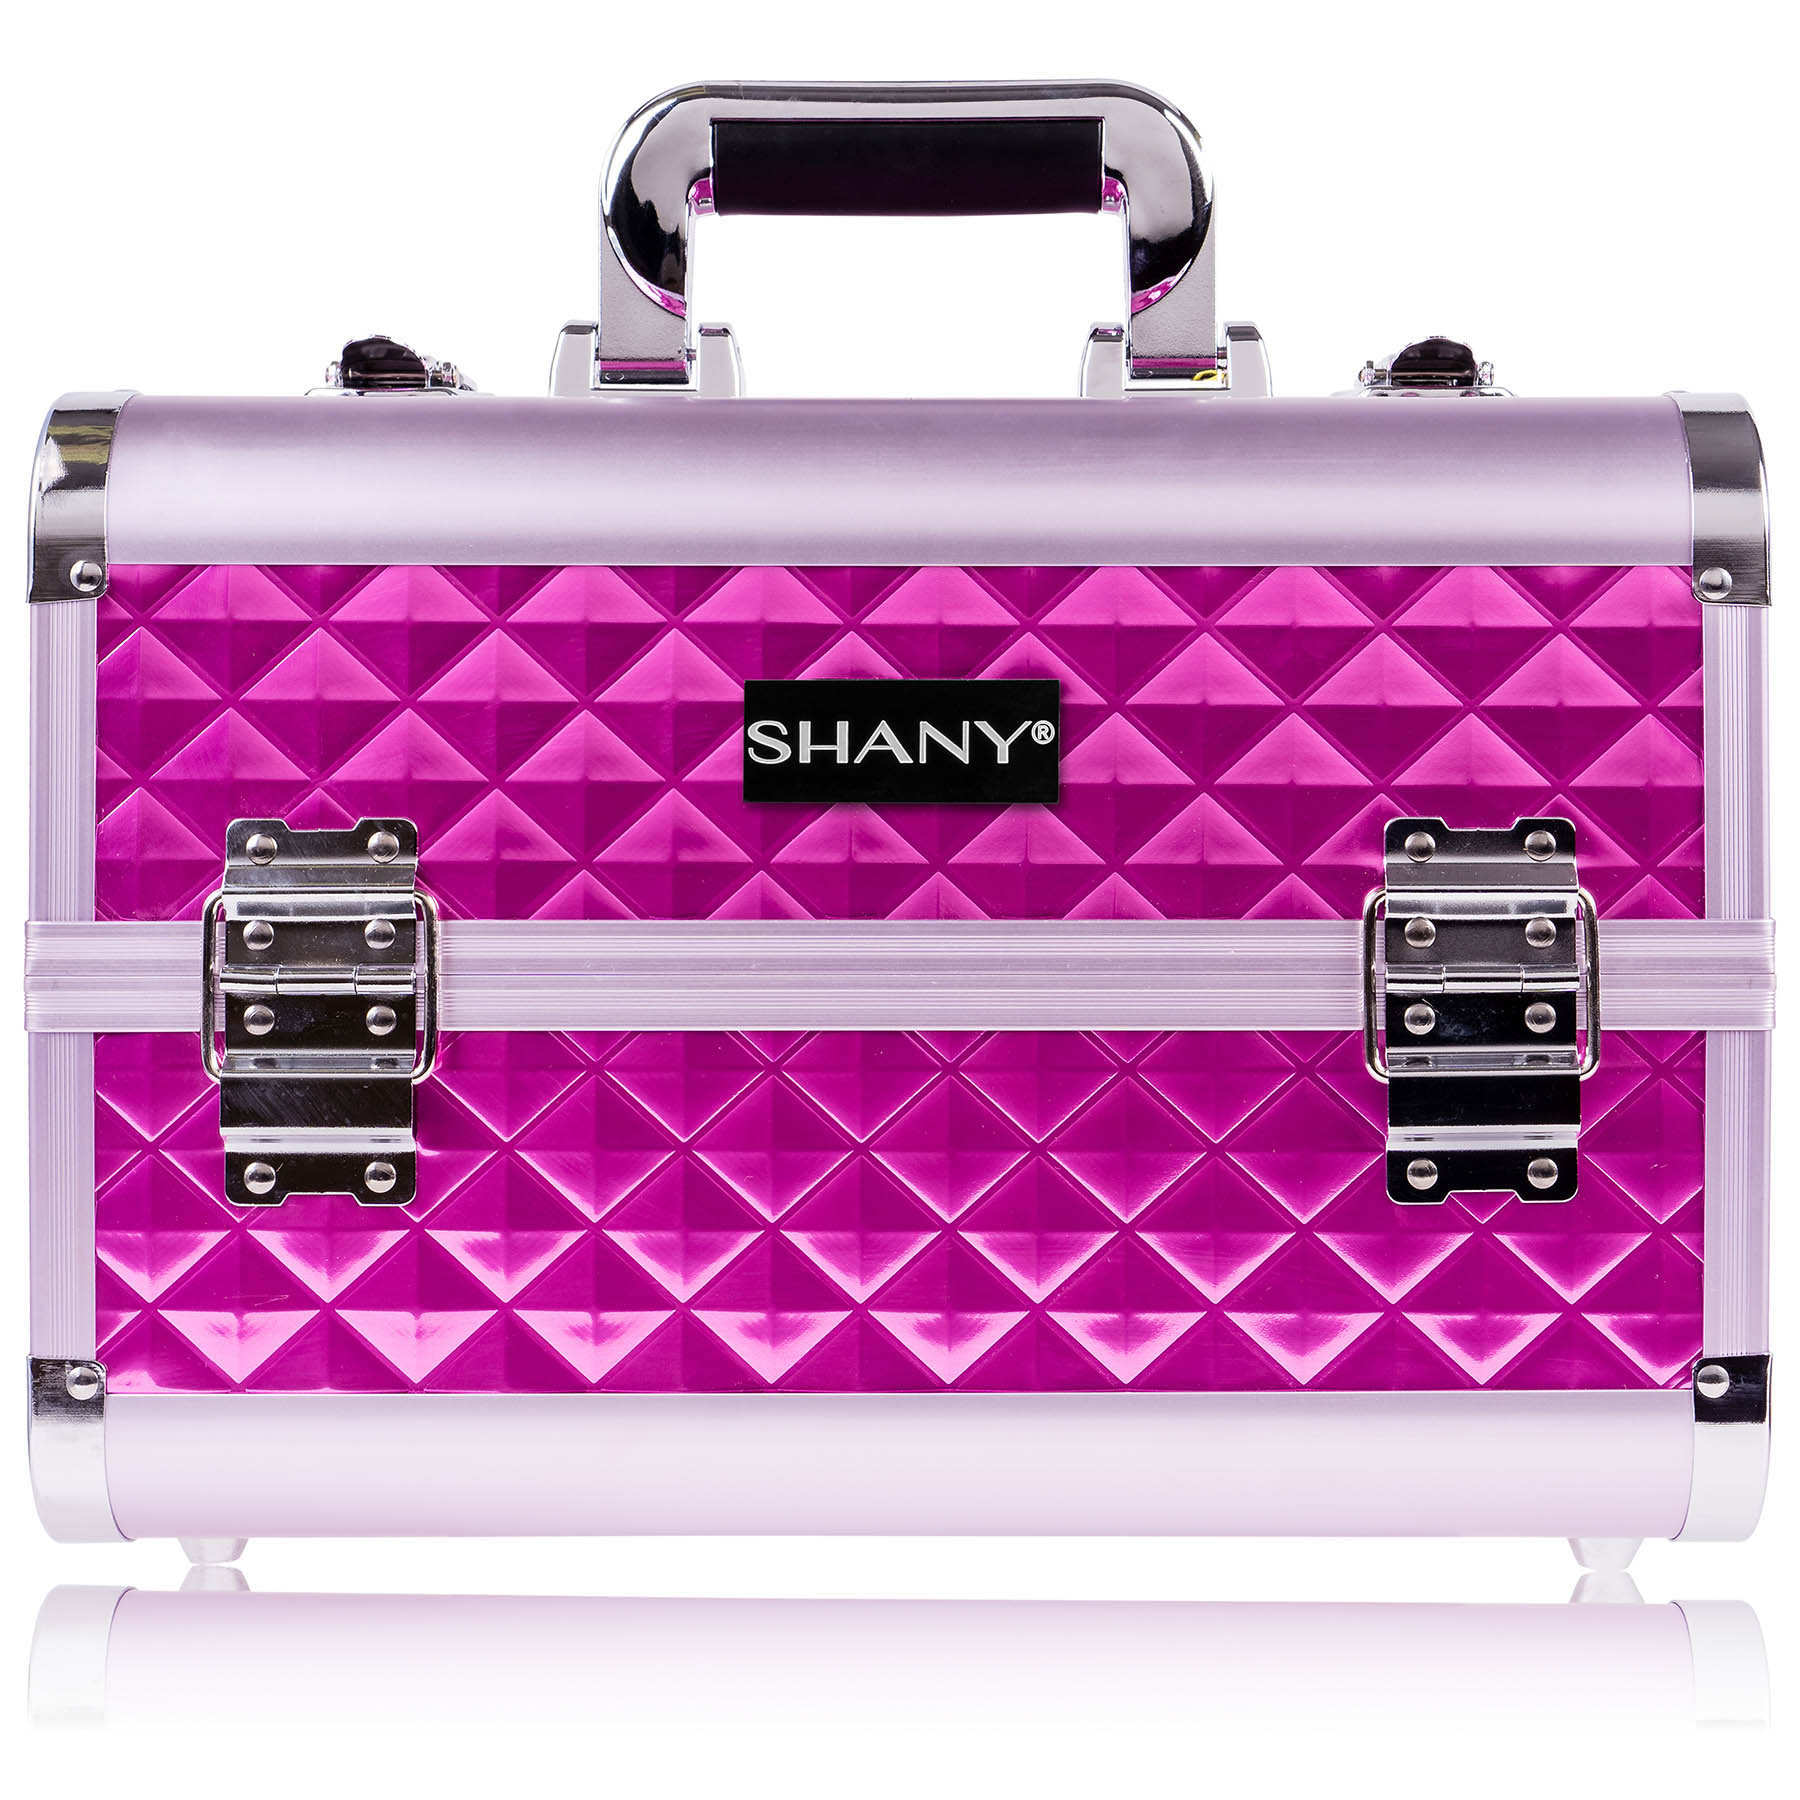 SHANY-Fantasy-Collection-Makeup-Artists-Cosmetics-Train-Case miniature 44